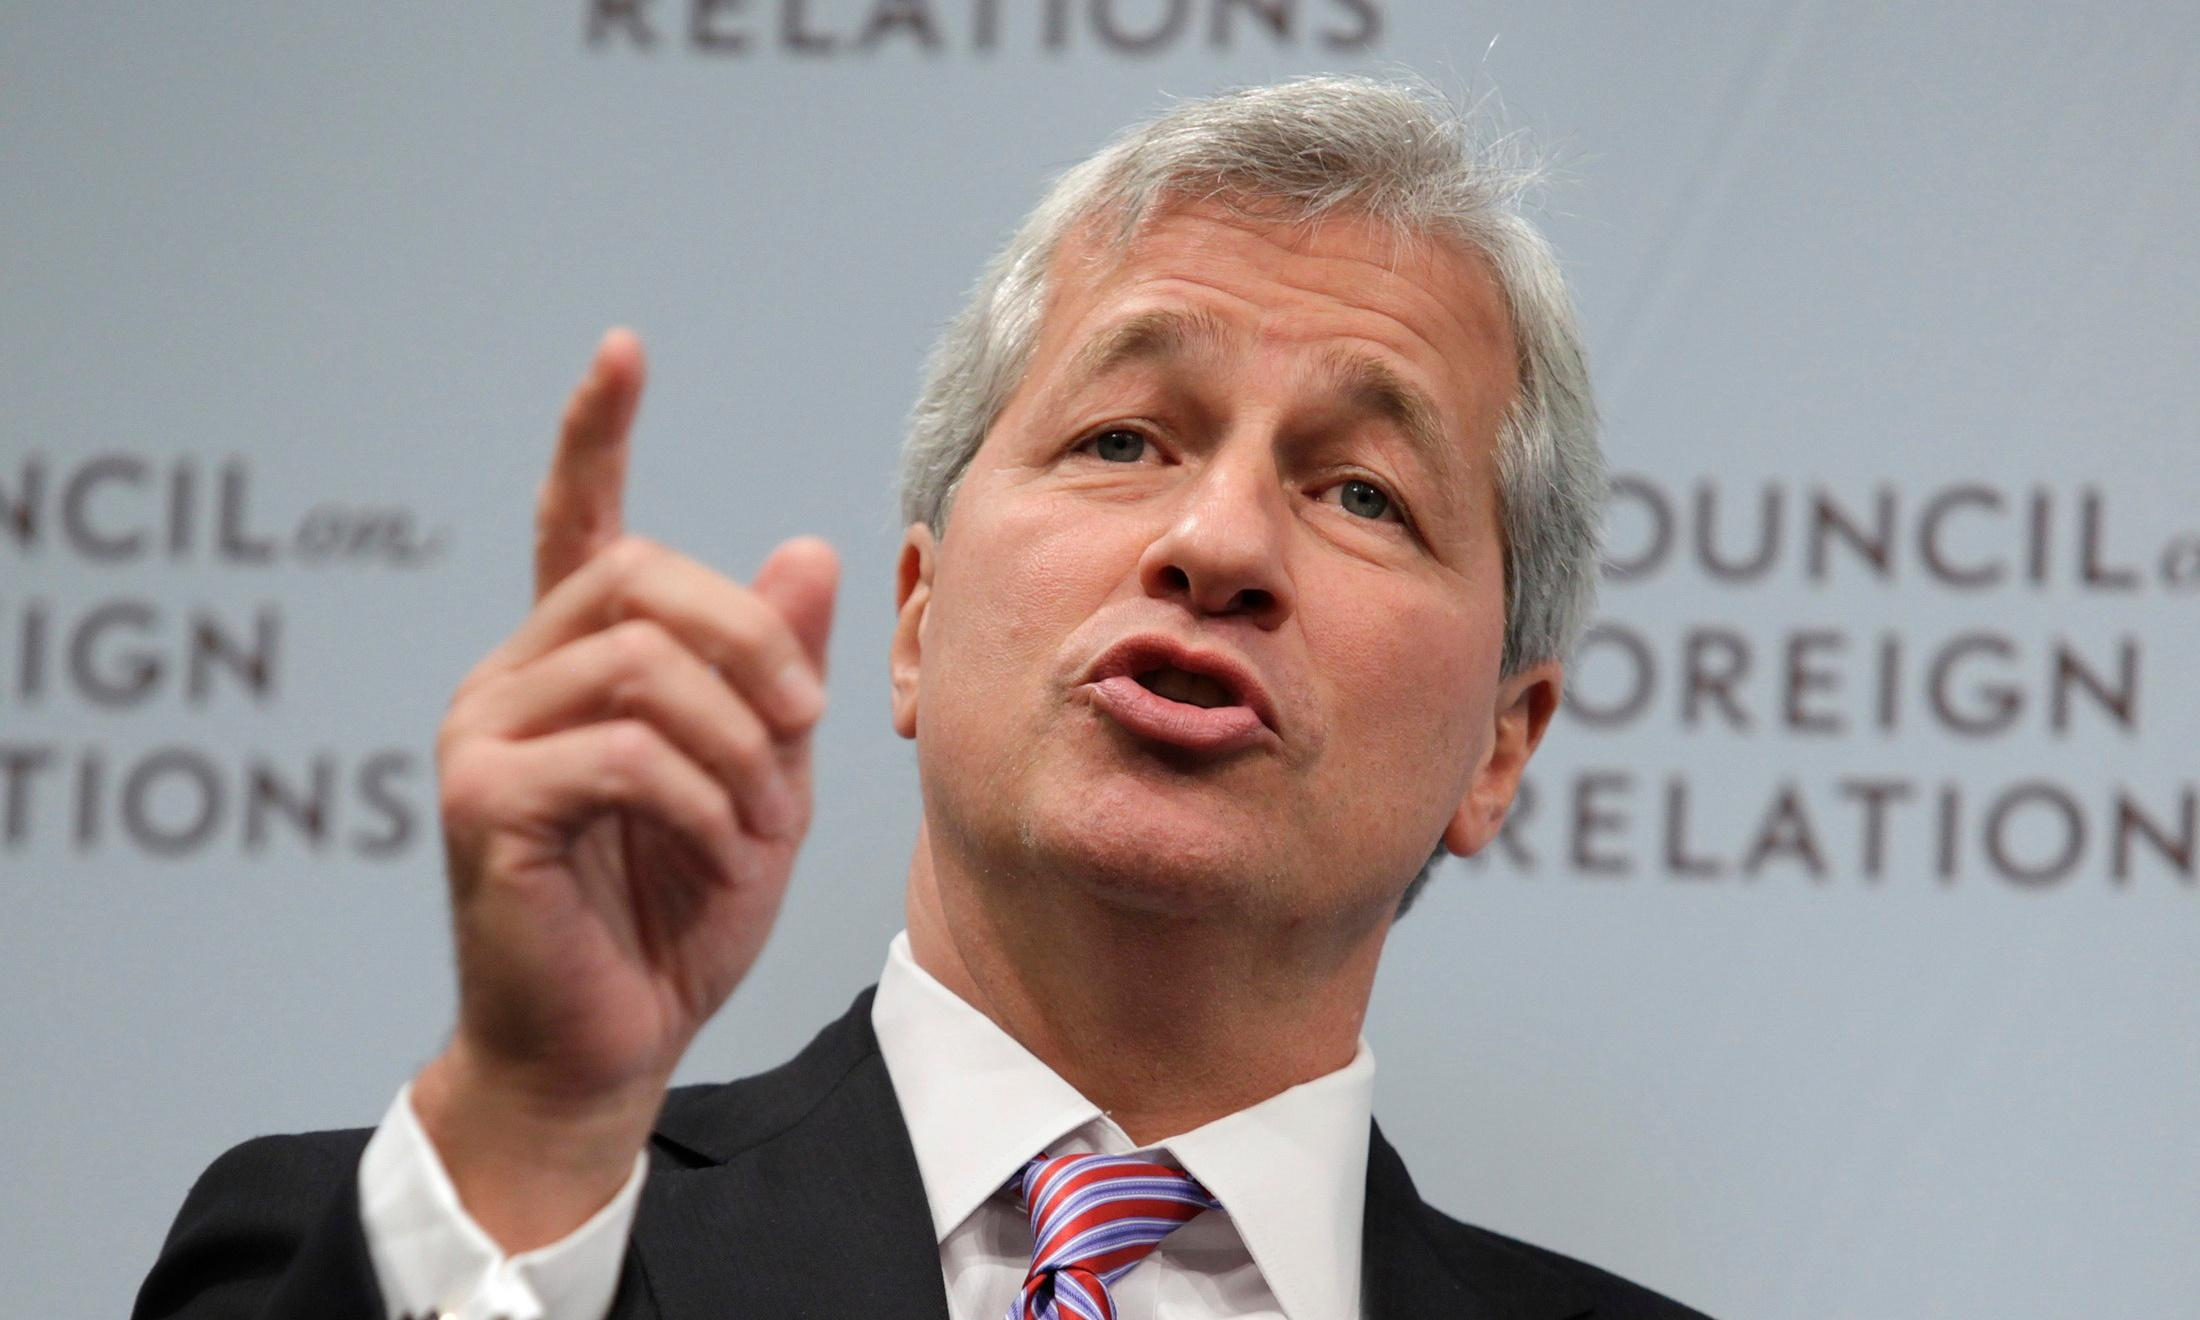 Jamie Dimon, spare us your crocodile tears about inequality